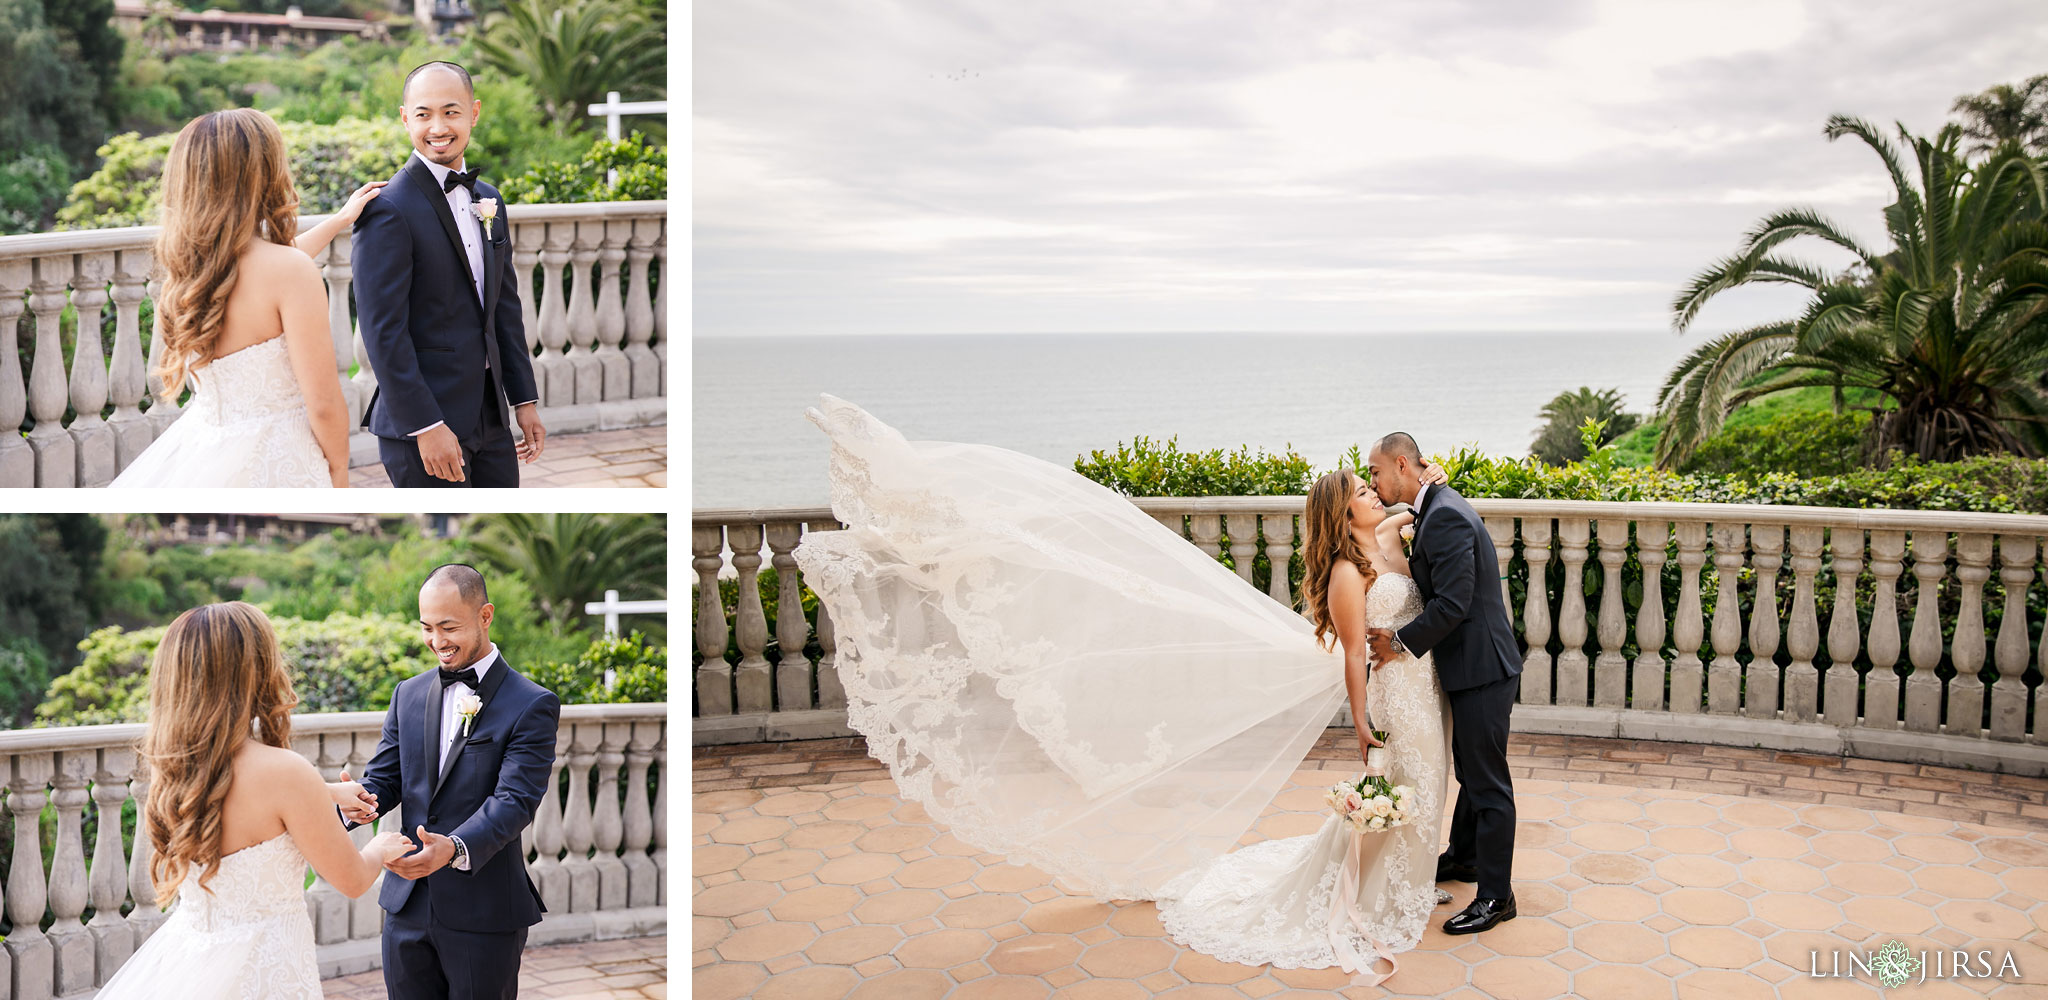 13 Bel Air Bay Club Pacific Palisades Wedding Photography